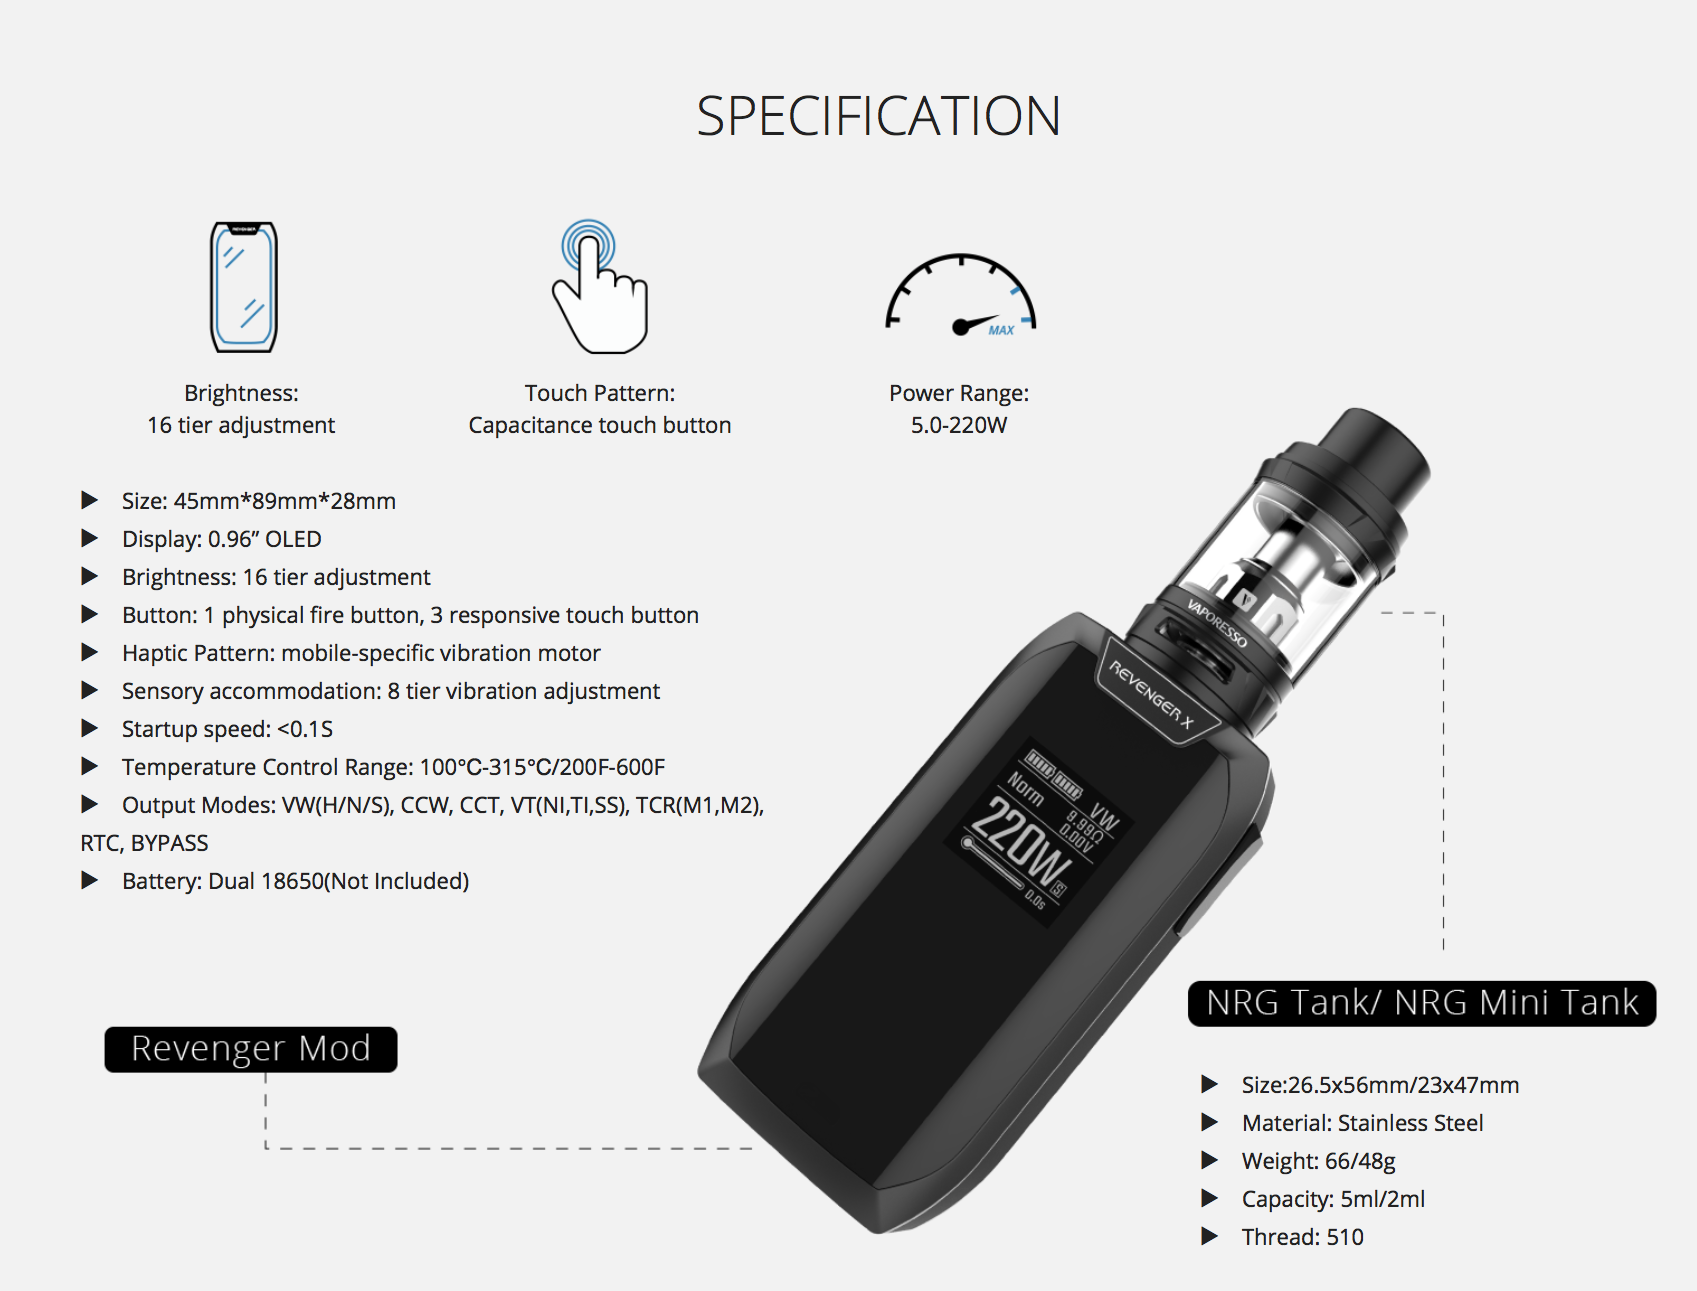 Vaporesso Revenger X Kit Review - Size and Weight